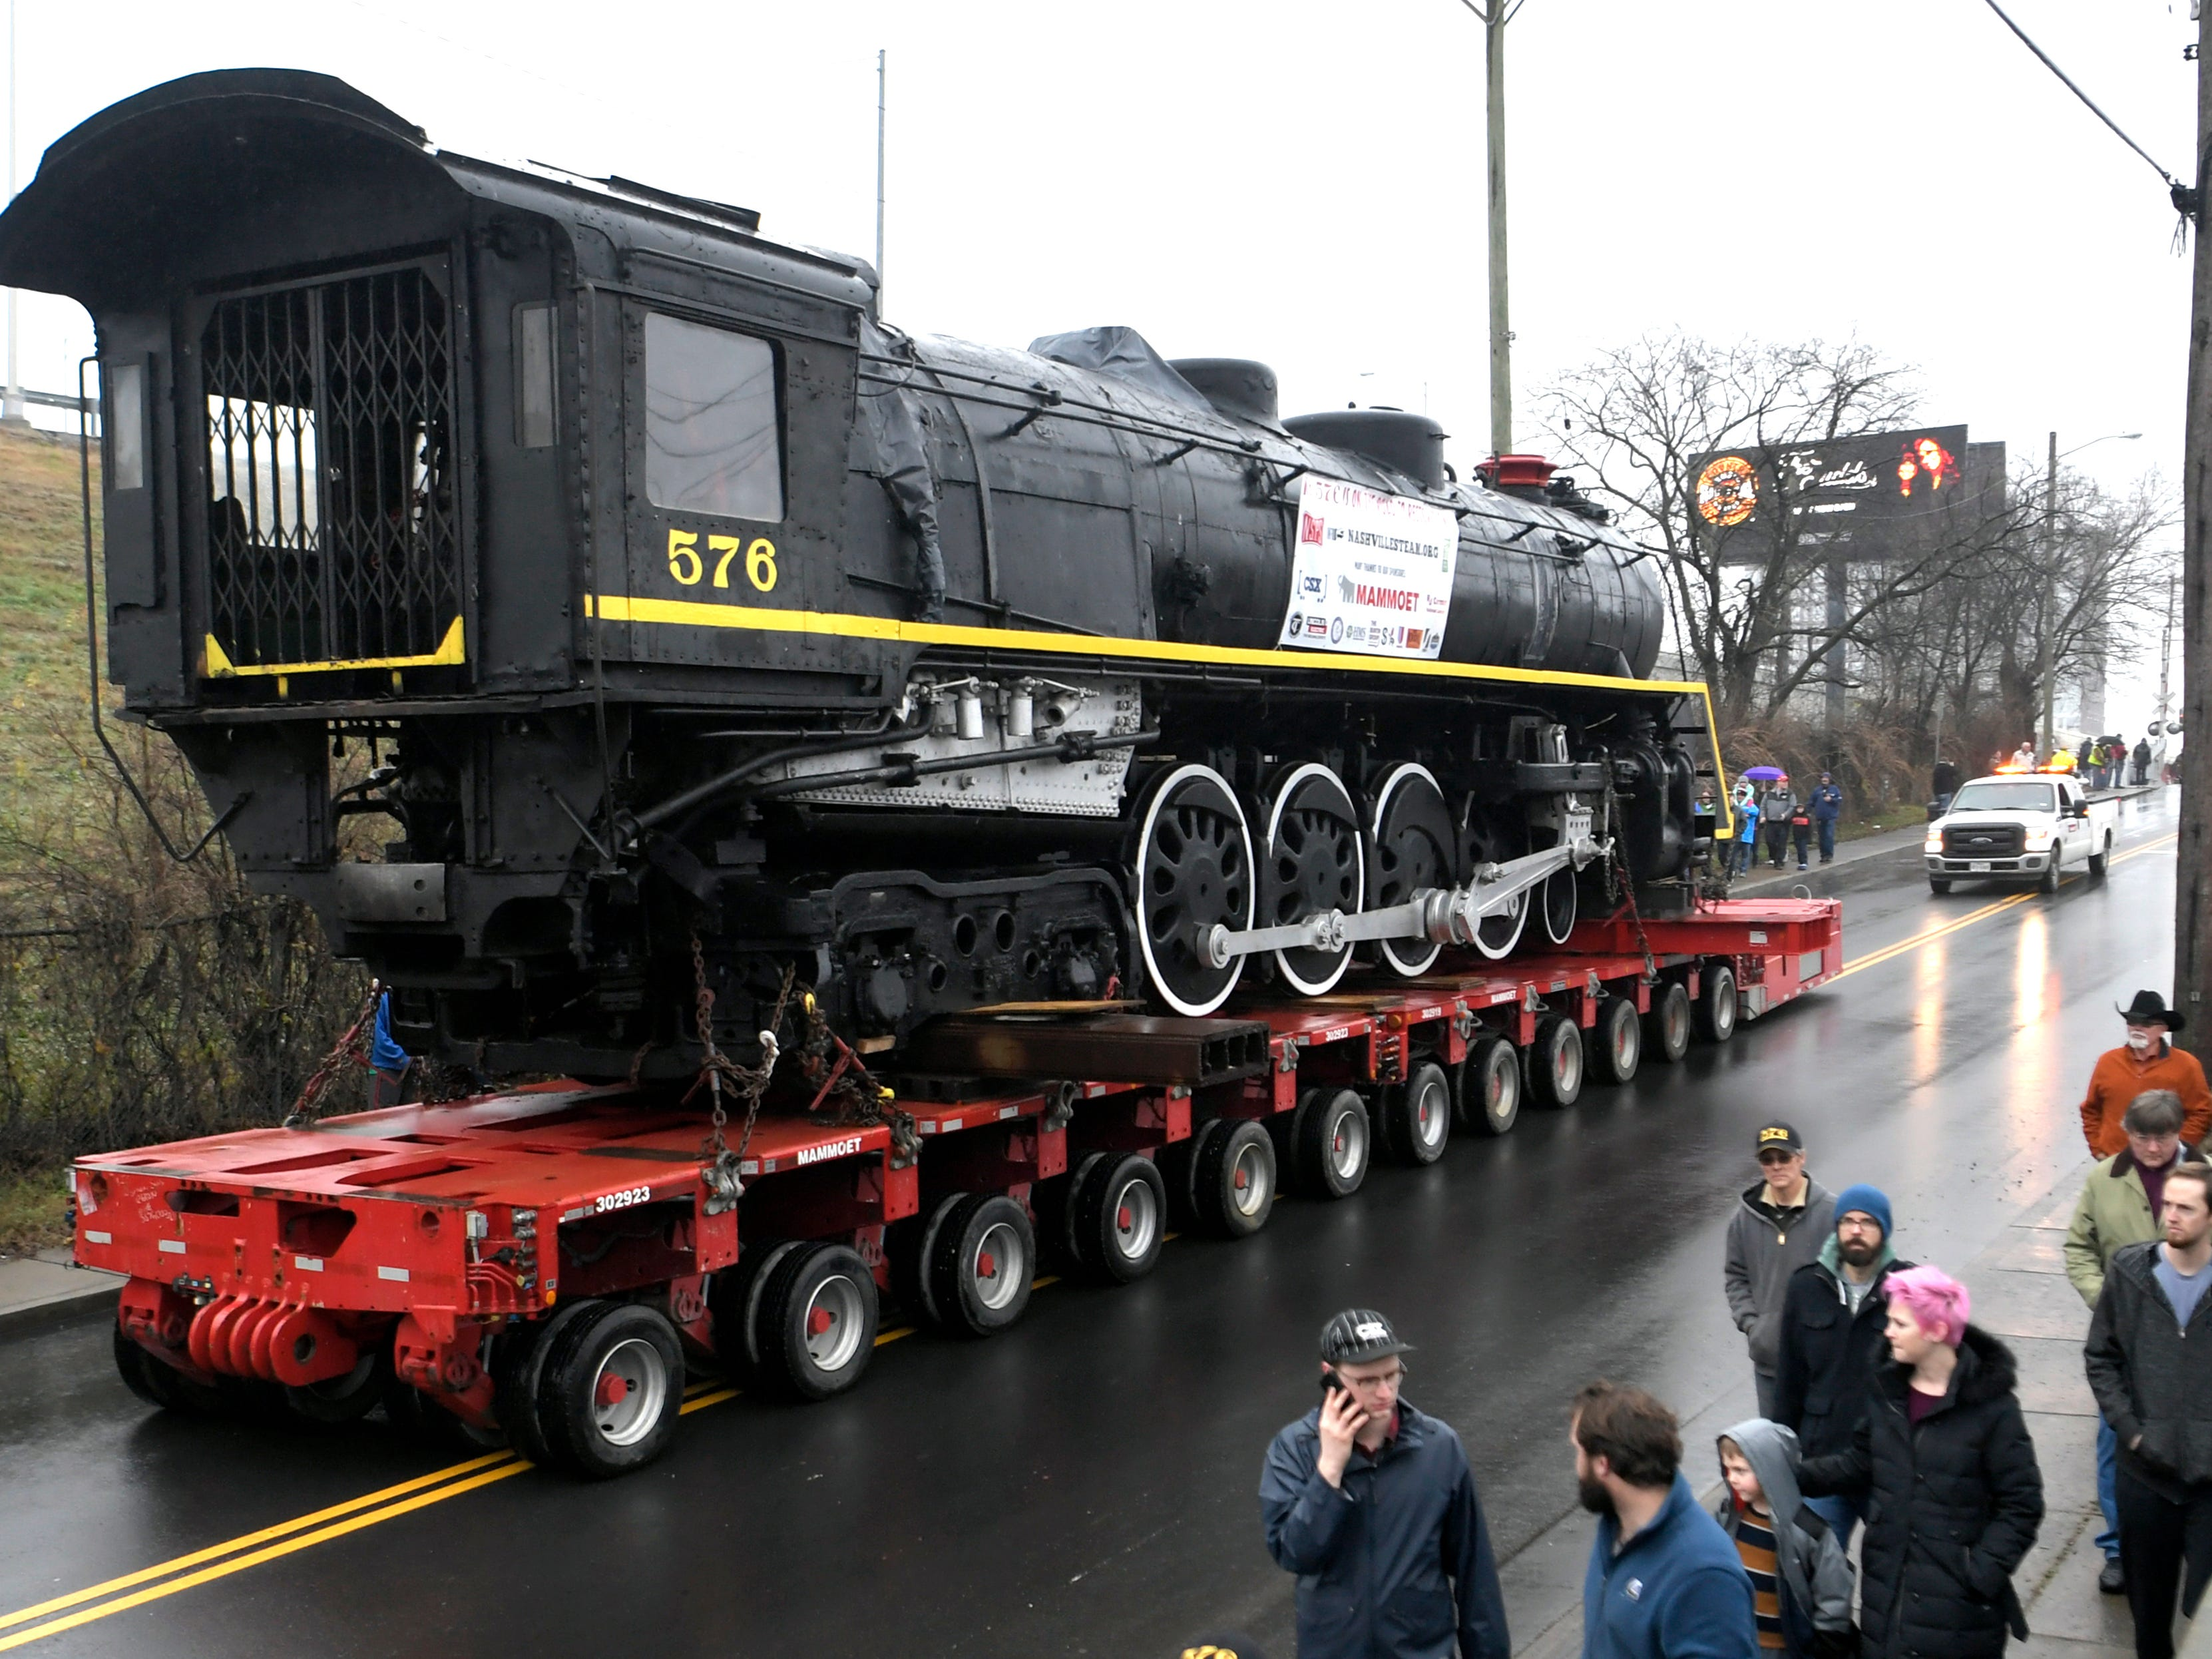 People walk with locomotive  No. 576 as it is being transported down 12th Ave North in Nashville on Sunday, Jan.  13, 2019.  The locomotive has been on display in Centennial Park for 65 years.